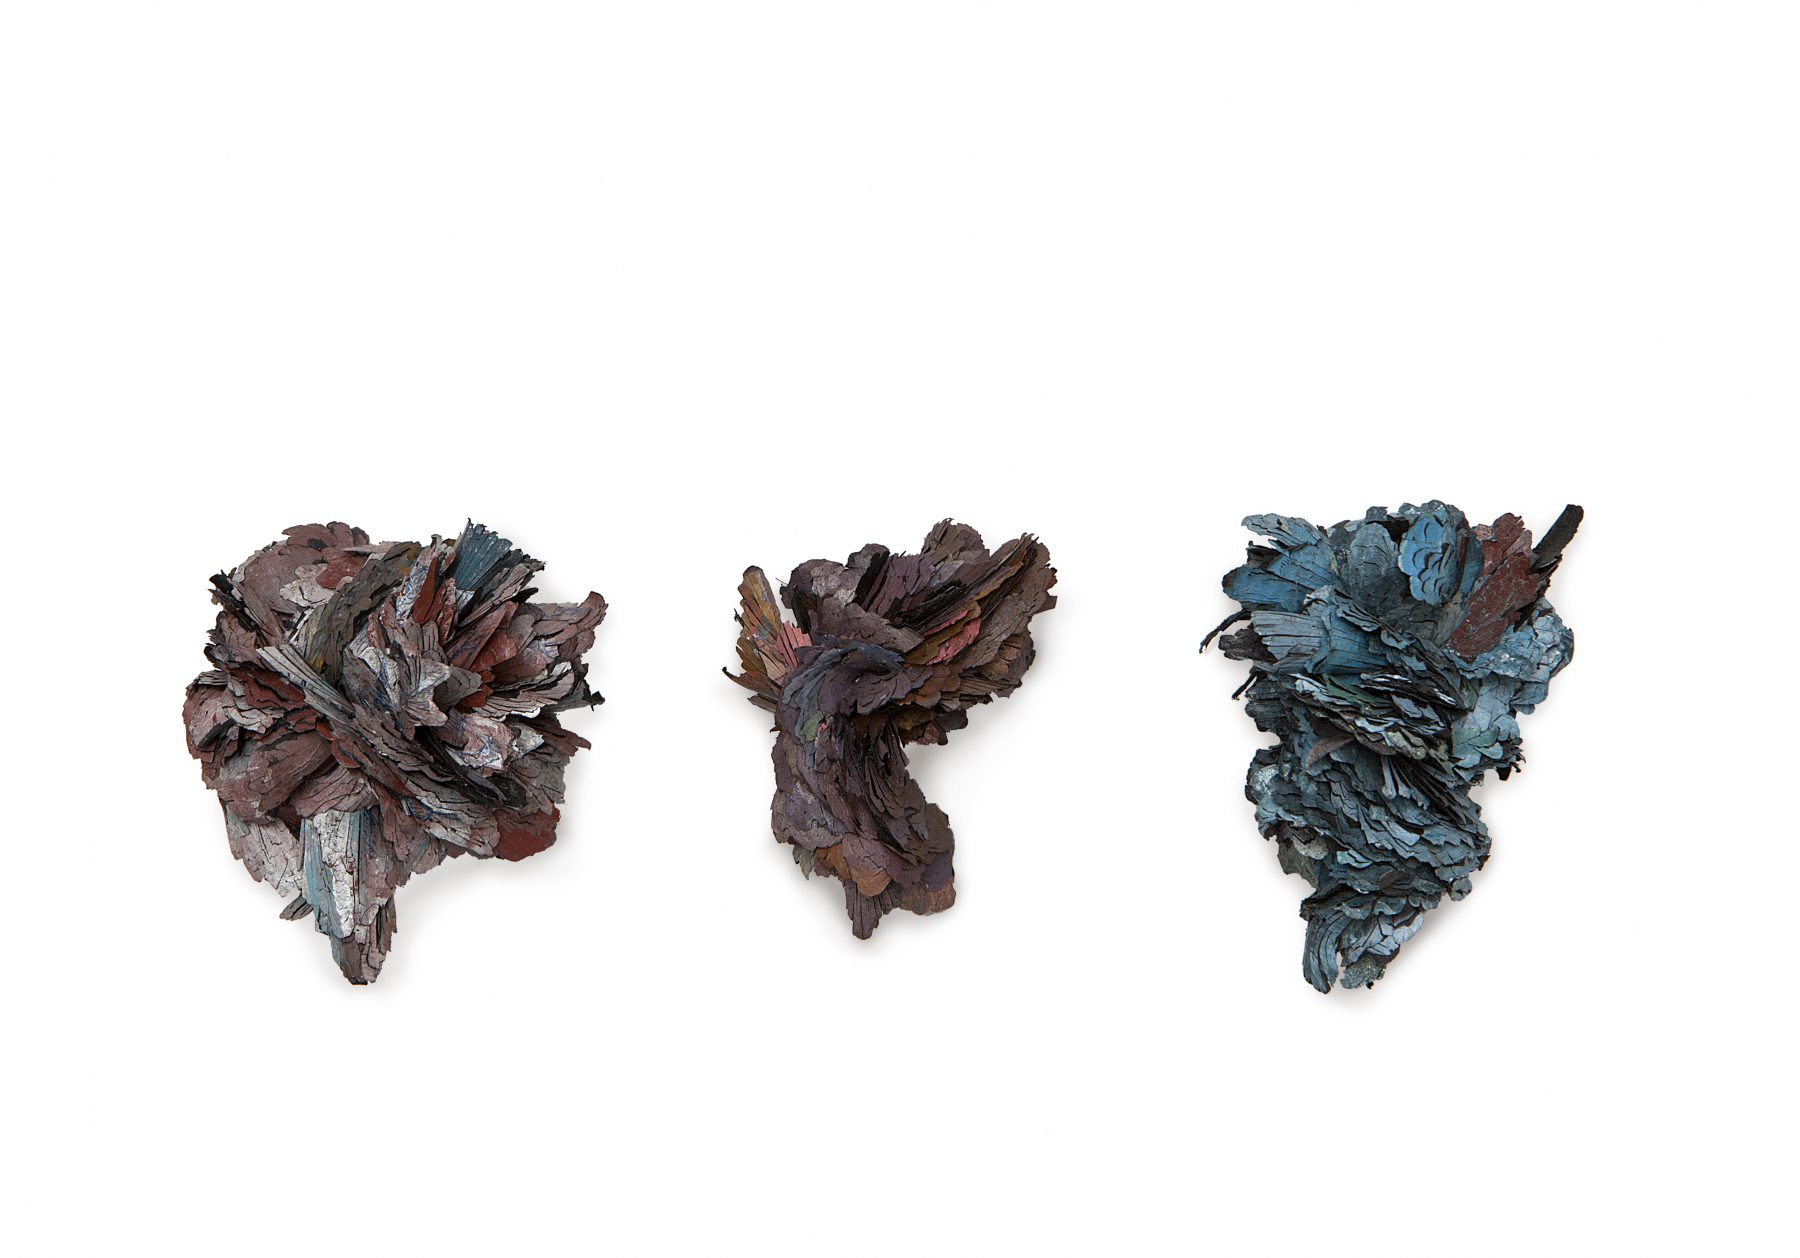 The Free Radicals (part 4,7,3)  | 3 Brooches    |   2013, 2011     |   Treated cellulose, paint, coal, glue, silver, brass, stainless steel       |  105X50X55 mm